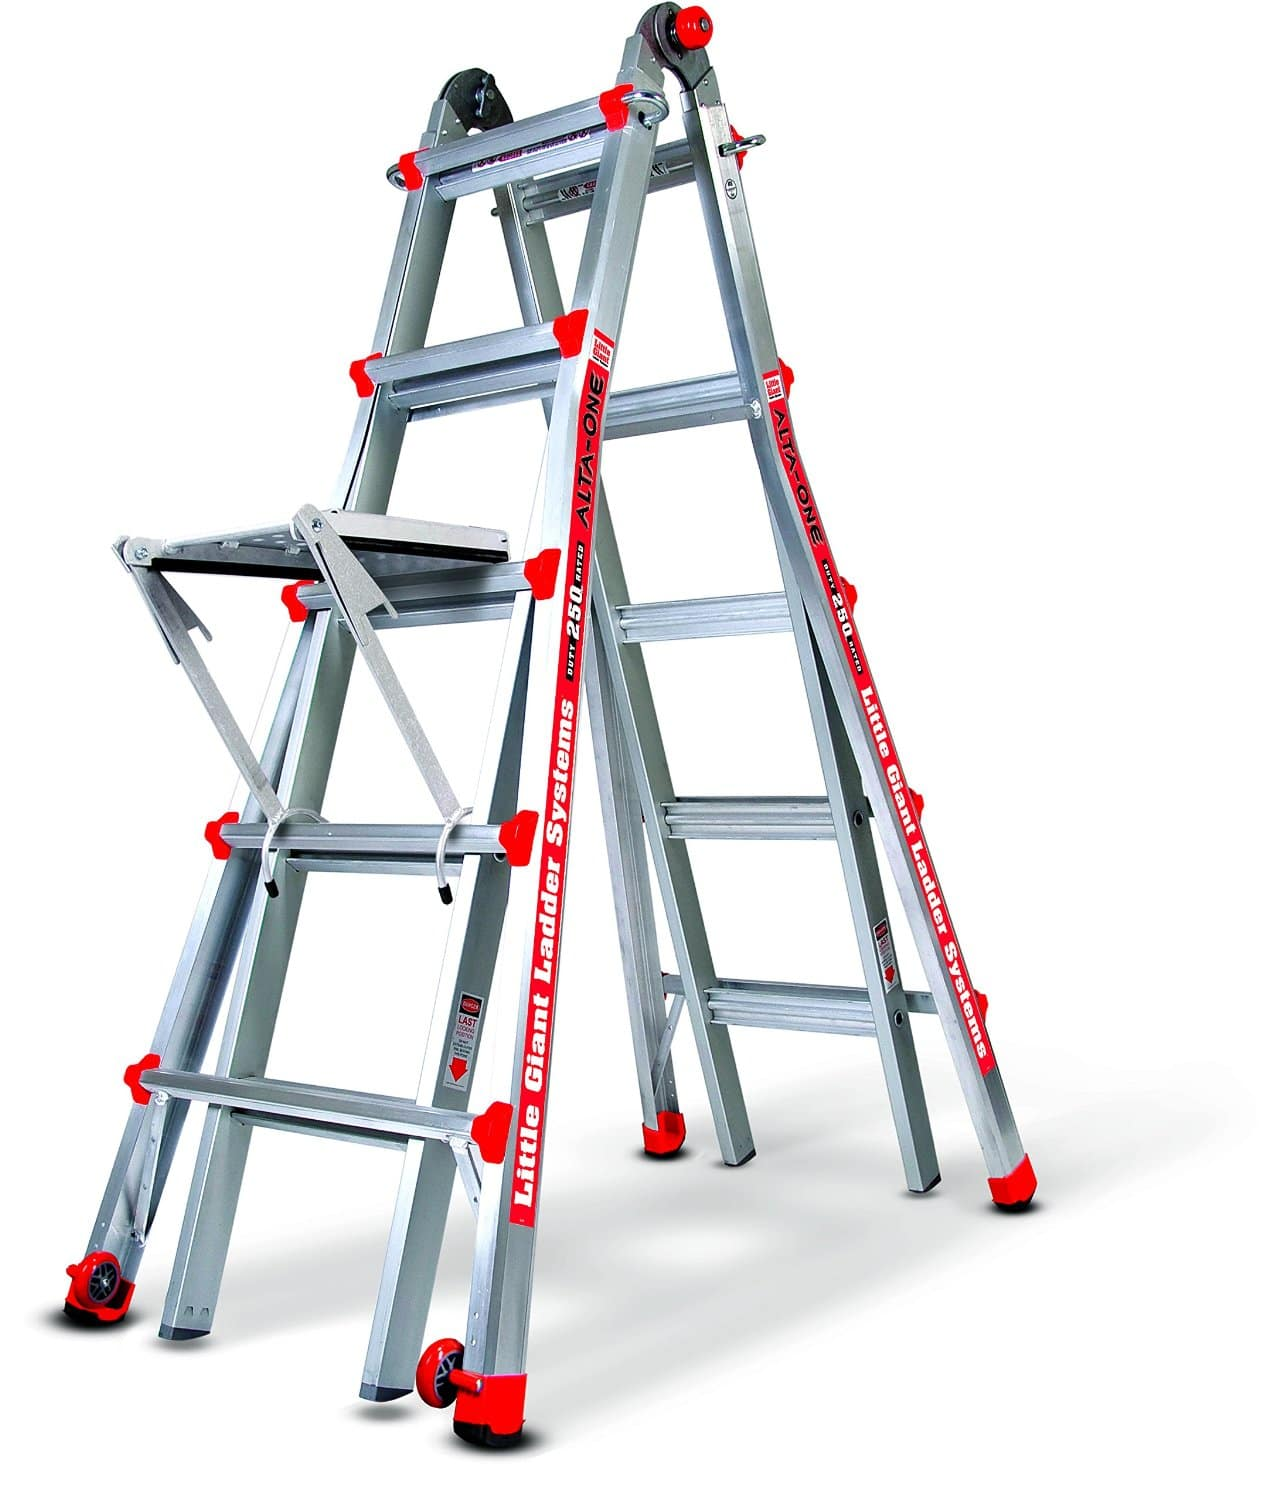 Little Giant 22' Alta One Ladder w/ Work Platform (250-lb Capacity)  $156 + Free Shipping